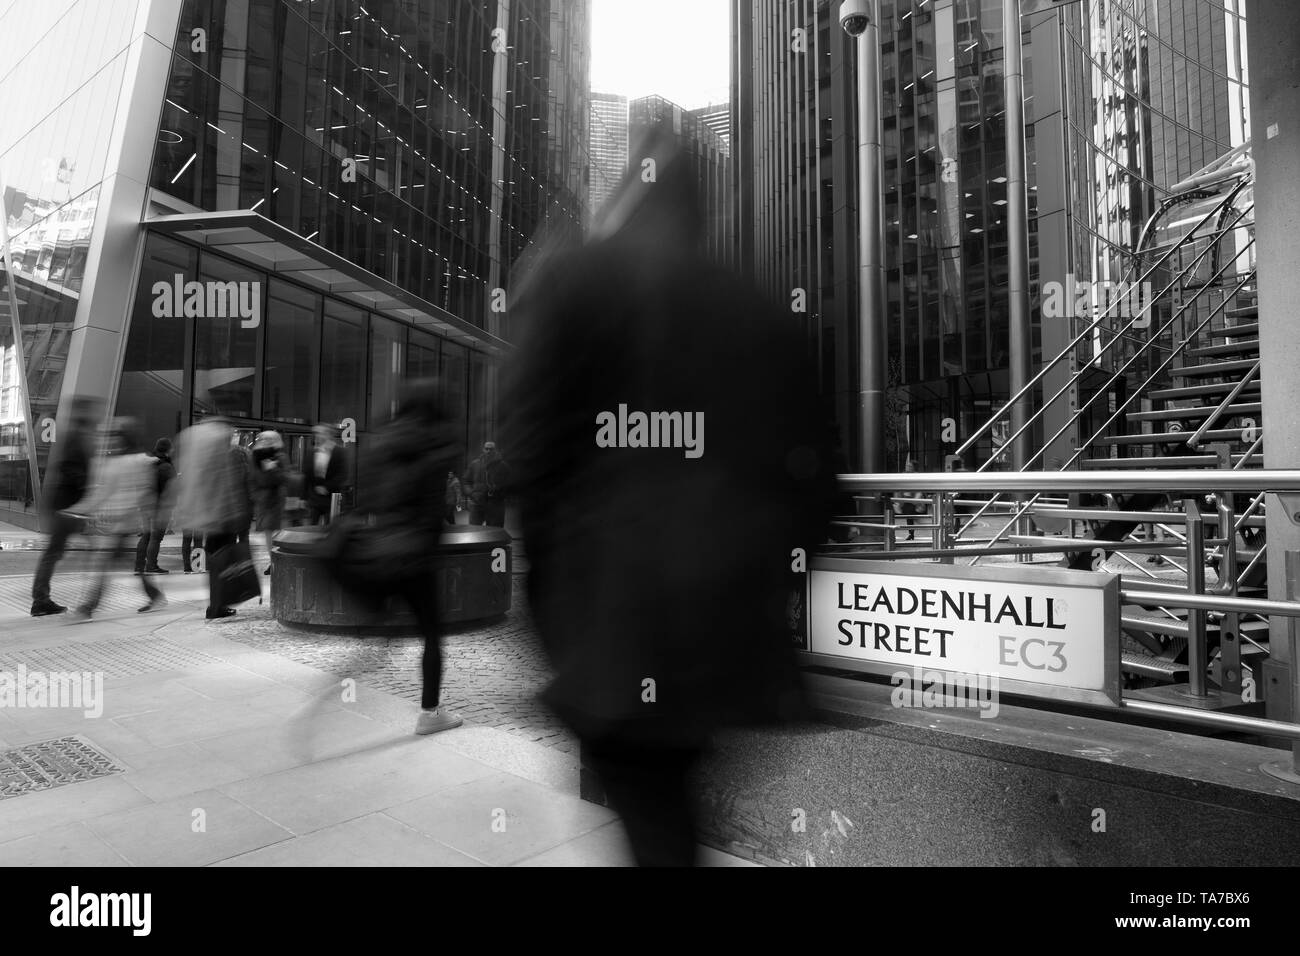 Black and white image of city buildings and people, with motion blur, Leadenhall Street, City of London. - Stock Image